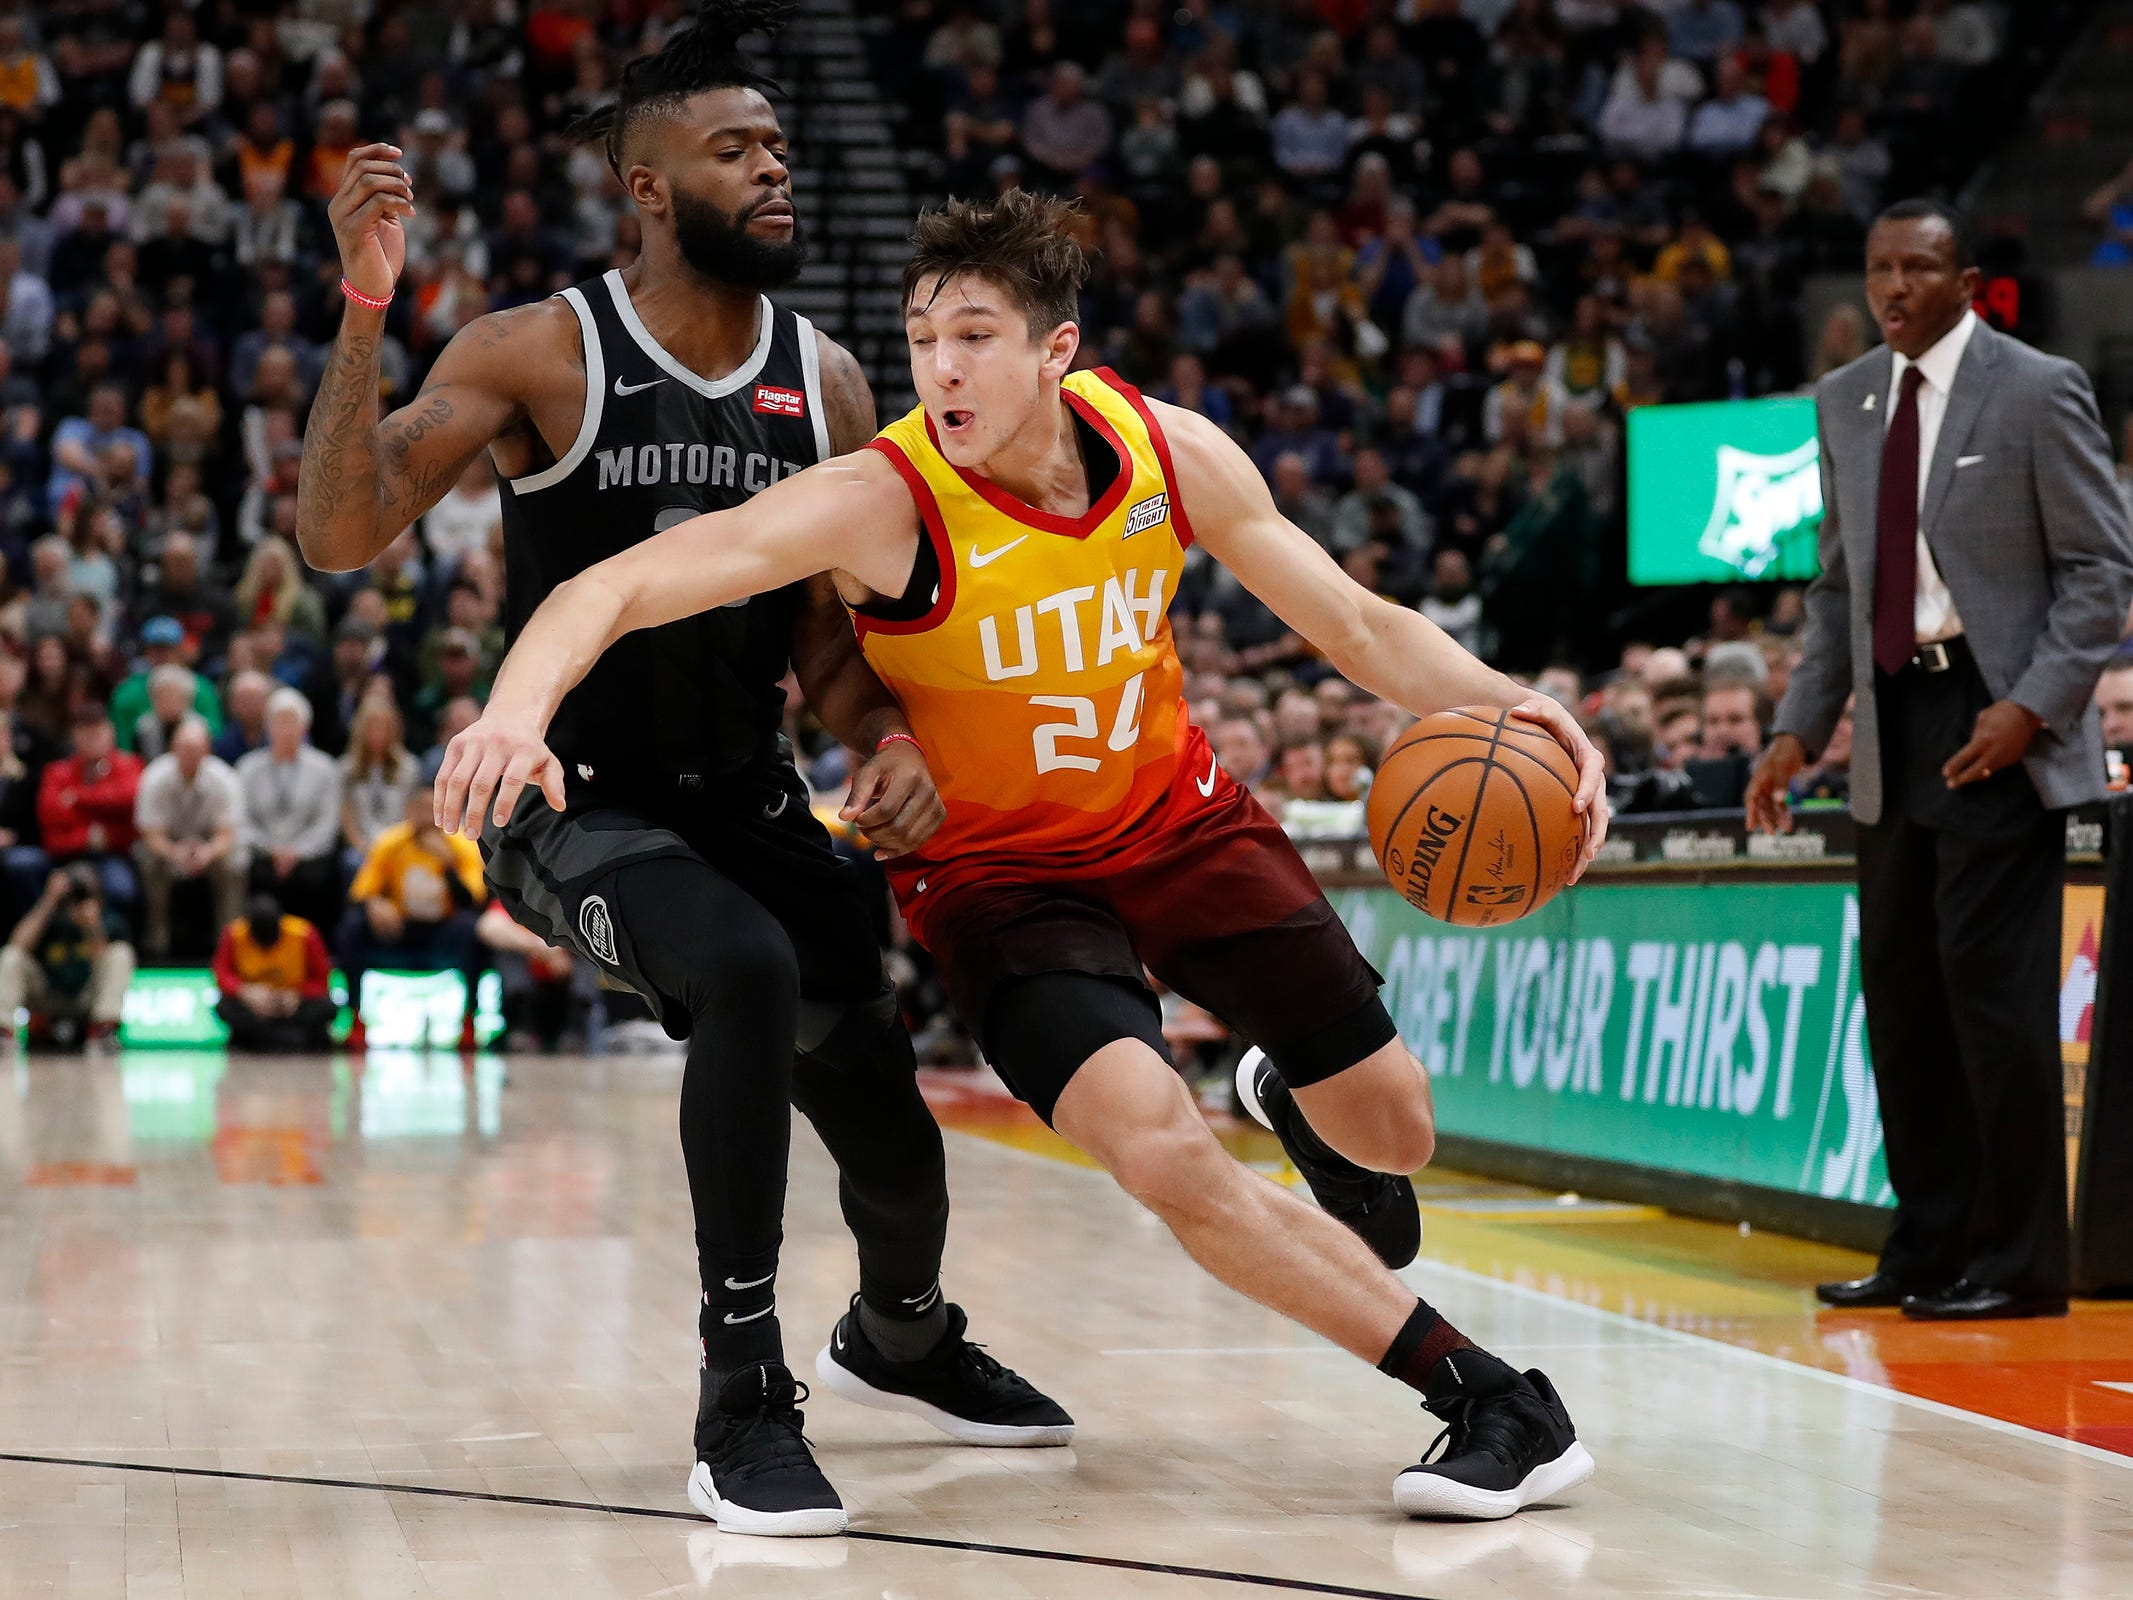 Jazz guard Grayson Allen looks to dribble past Pistons guard Reggie Bullock in the fourth quarter of the 100-94 loss to the Jazz on Monday, Jan. 14, 2019, in Salt Lake City.